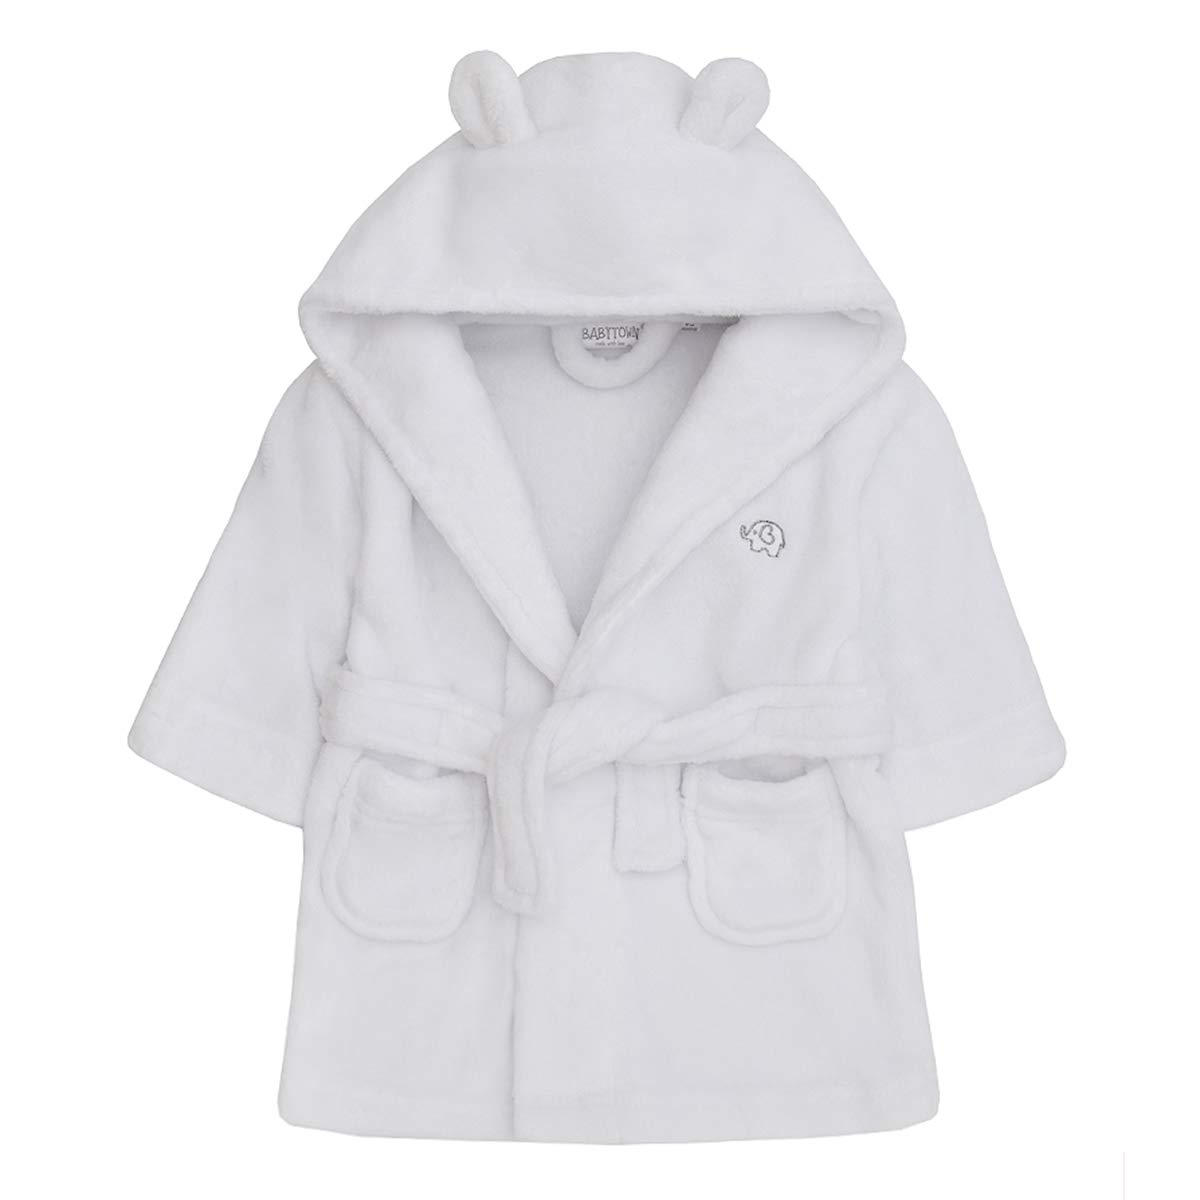 Baby Boys   Girls Unisex Dressing Gown (Ages 6-24 Months) Soft Plush 40015eff5